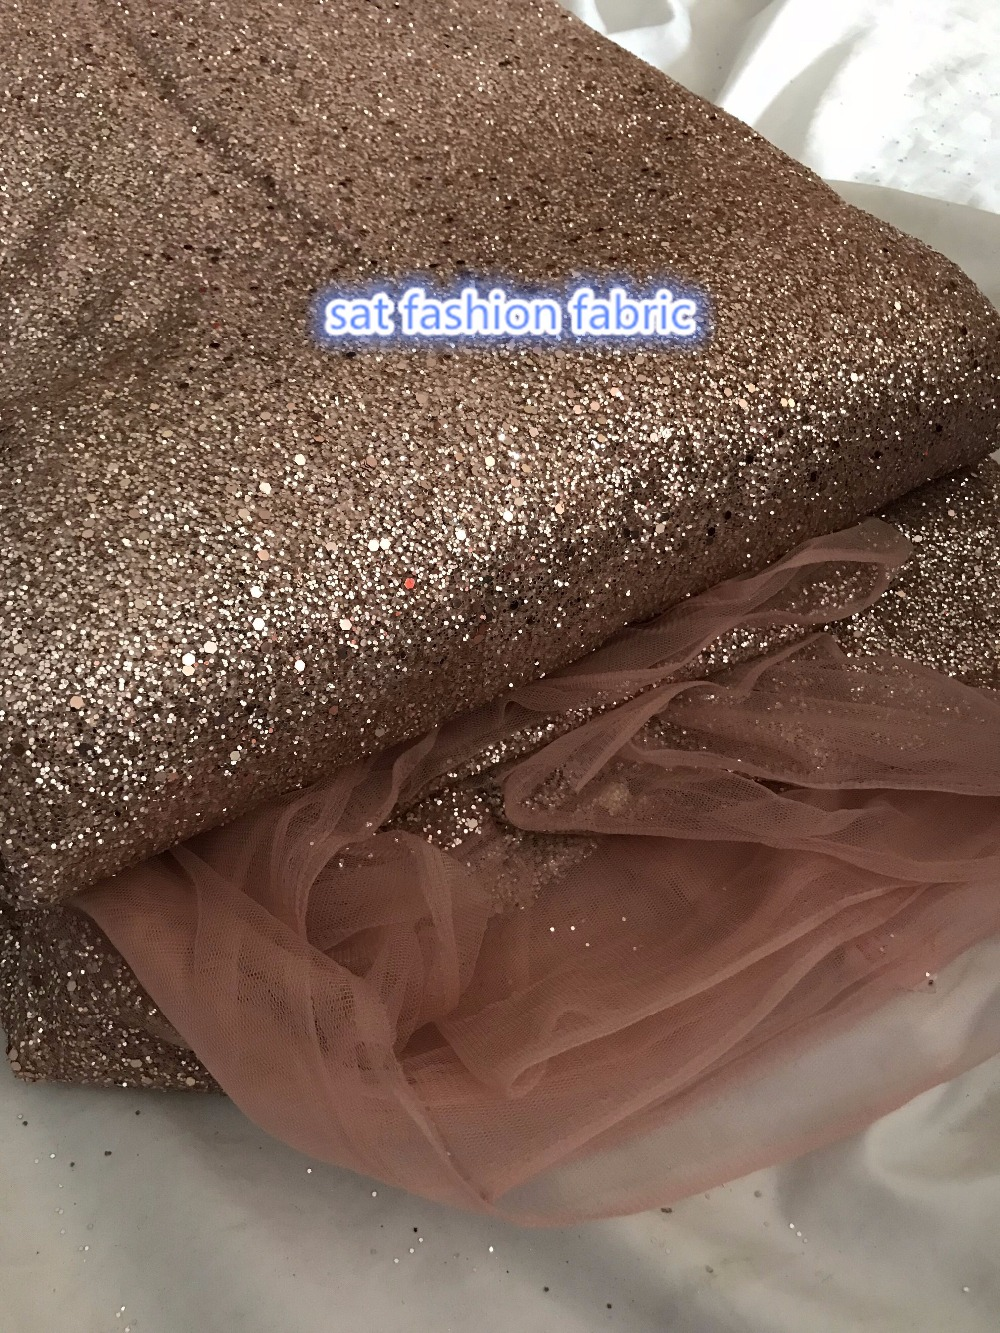 rose gold SAT 666 1 glued print glitter tulle african Indian net lace fabric 5yards for